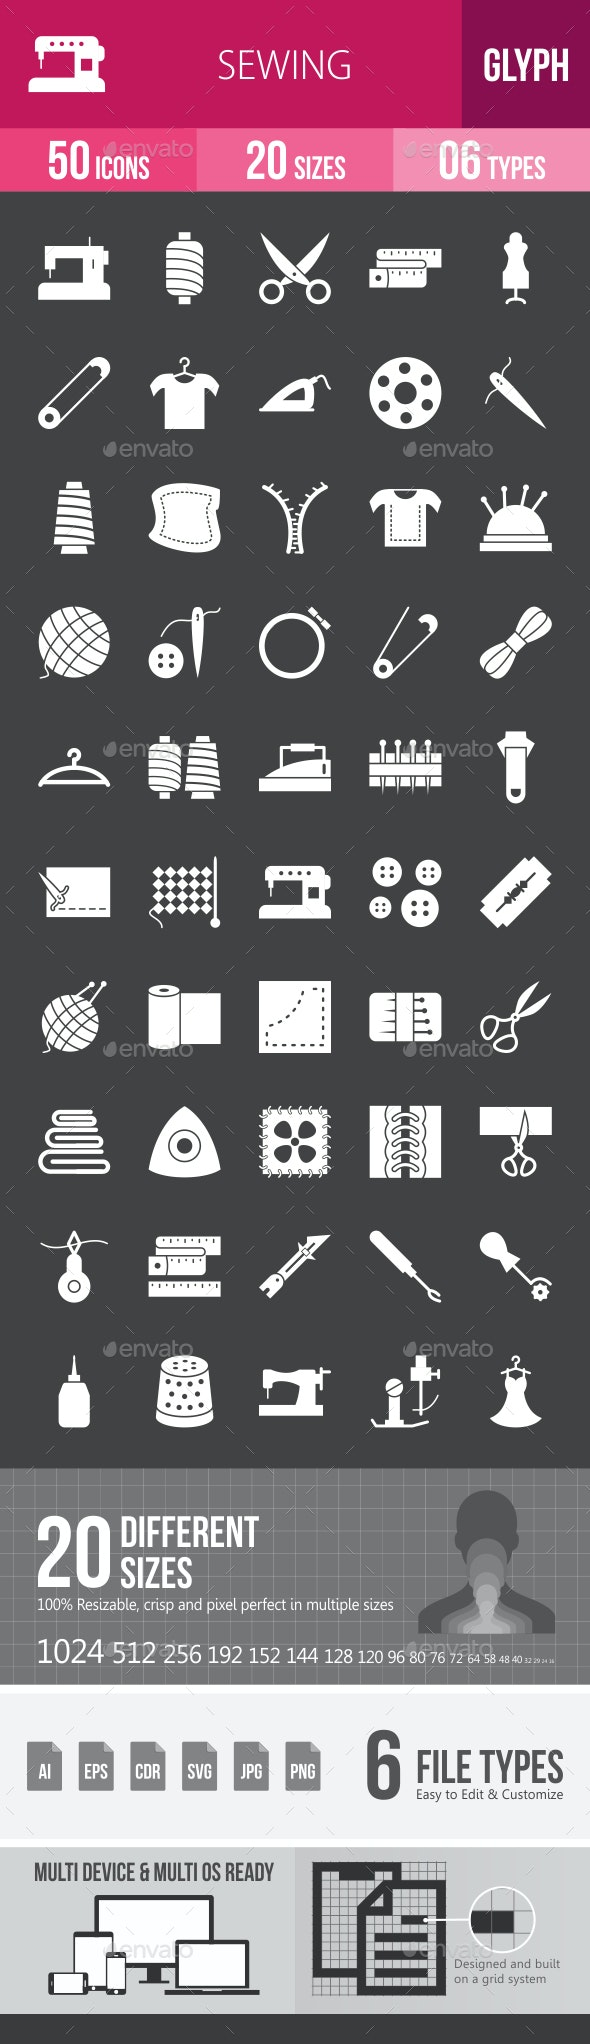 Sewing Glyph Inverted Icons - Icons